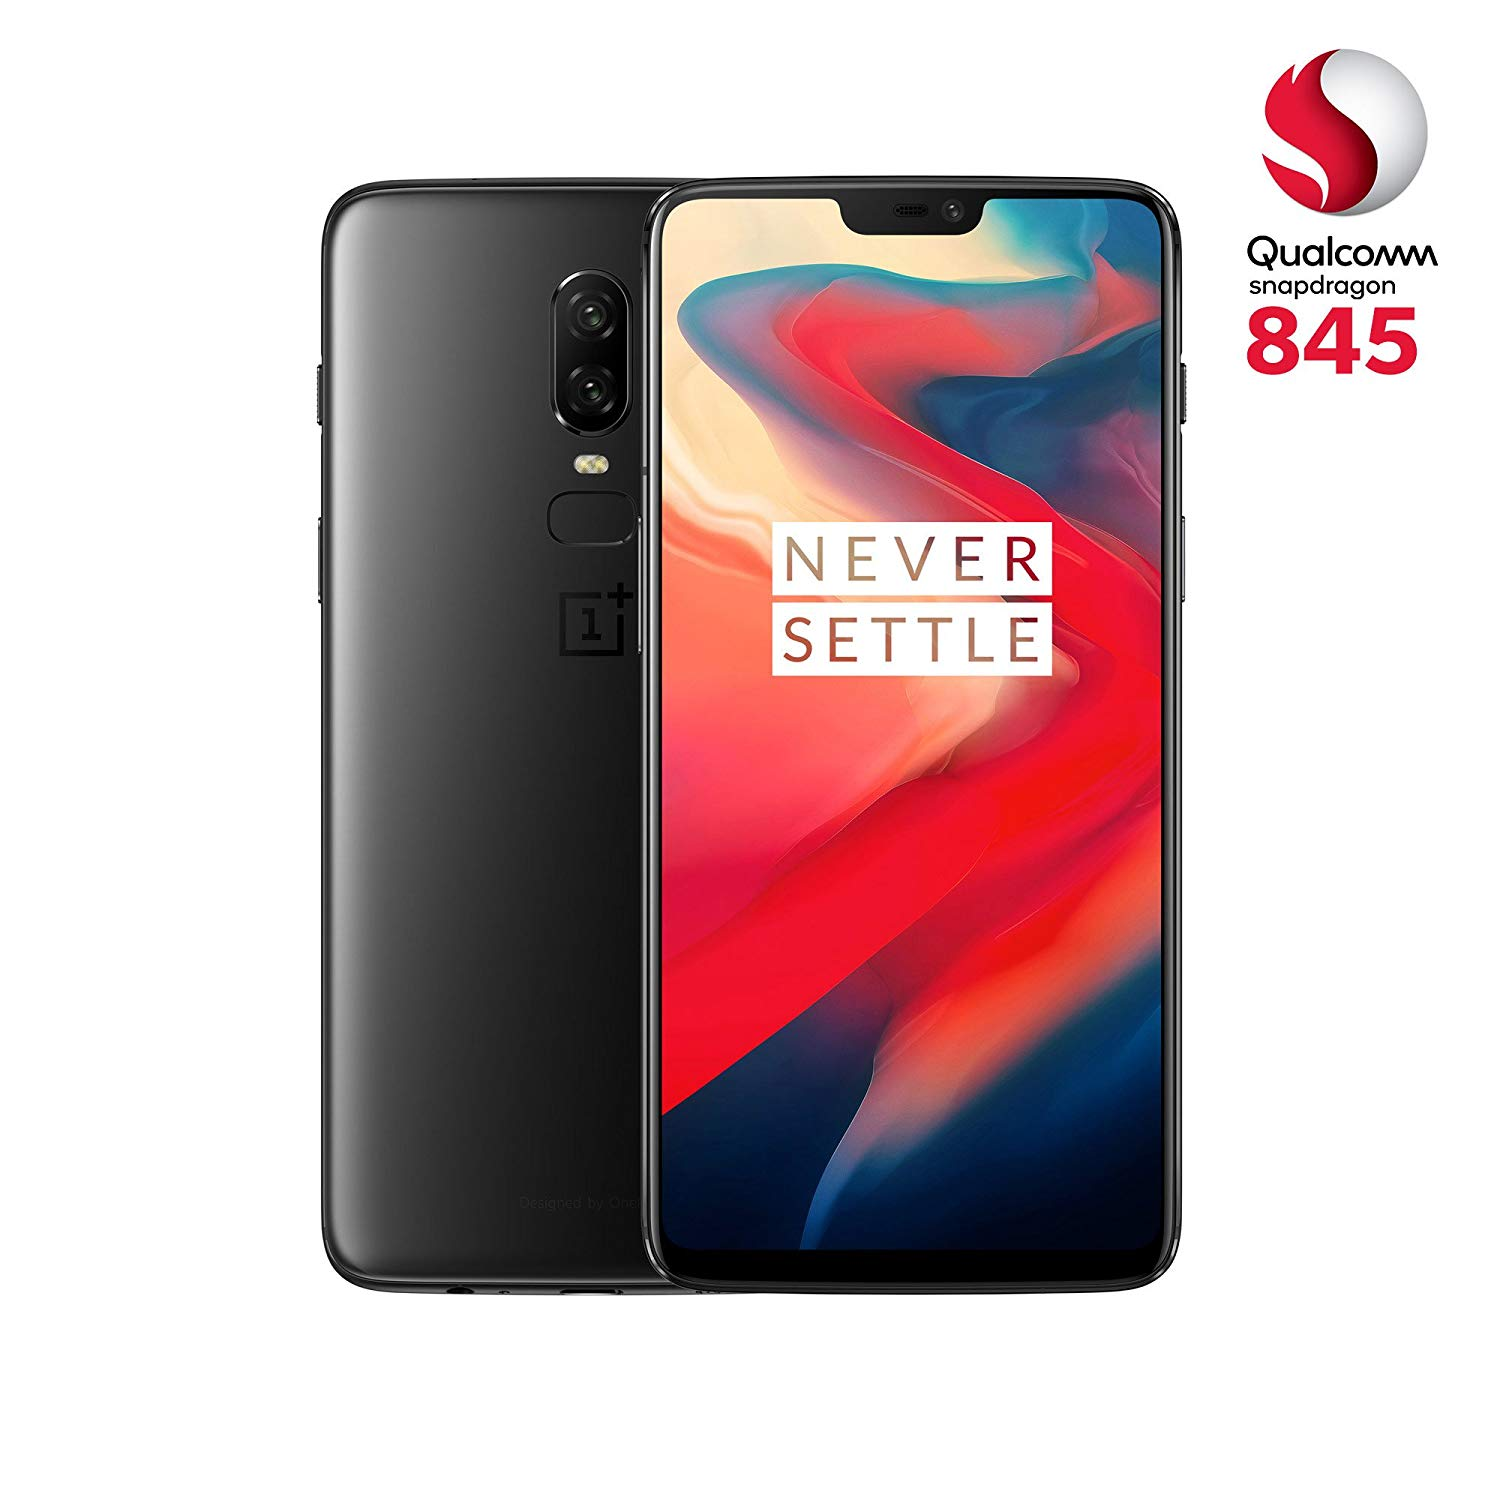 505,39€ OnePlus 6 Smartphone (15,95 cm (6,28 Zoll) 19:9 Touch-Display, 128 GB interner Speicher, Android 8.1 Oreo / Oxygen OS 5.1), Midnight Black